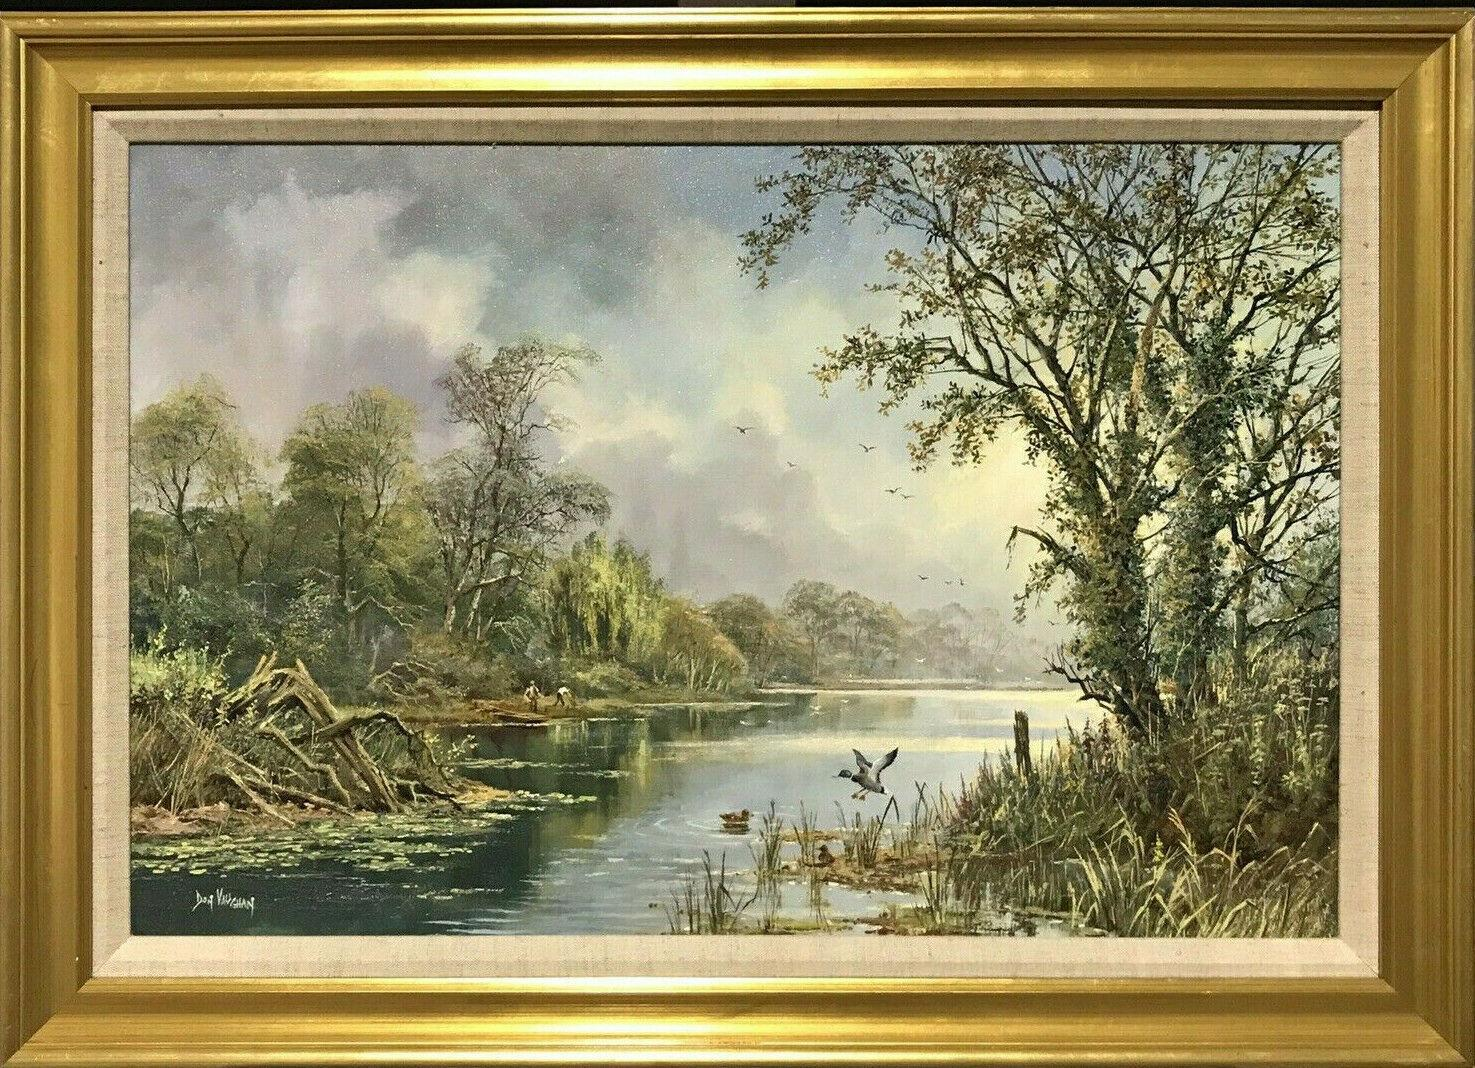 LARGE ORIGINAL ENGLISH OIL TRANQUIL RIVER LANDSCAPE REED CUTTING & DUCKS